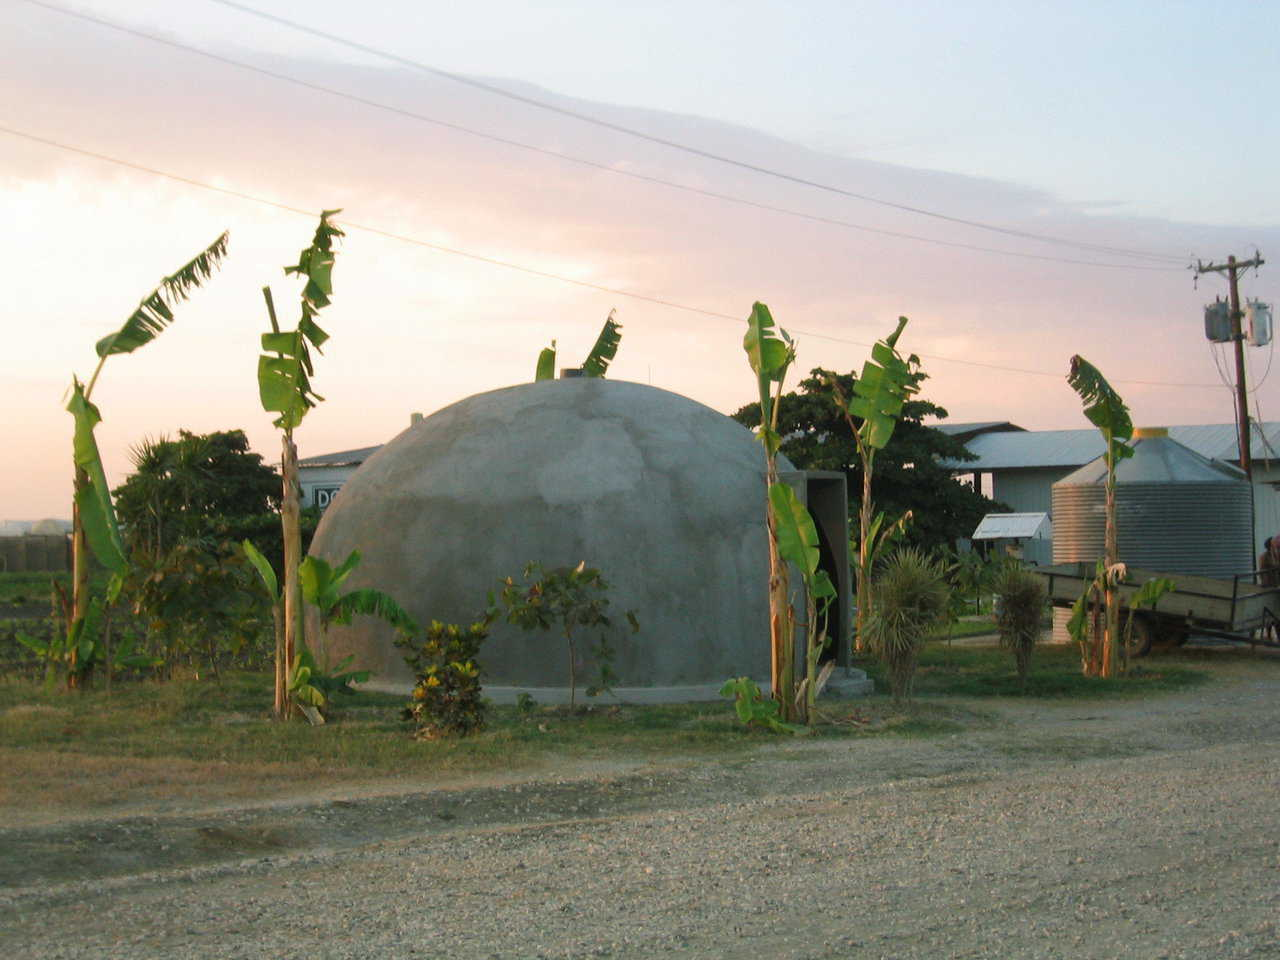 Ecoshells in Haiti — This EcoShell, located in Haiti, provides protection from hurricanes and infestation. A standard mud hut measures 160 sf. This EcoShell is twice the size – measuring 314 sf, yet costs the same to construct.